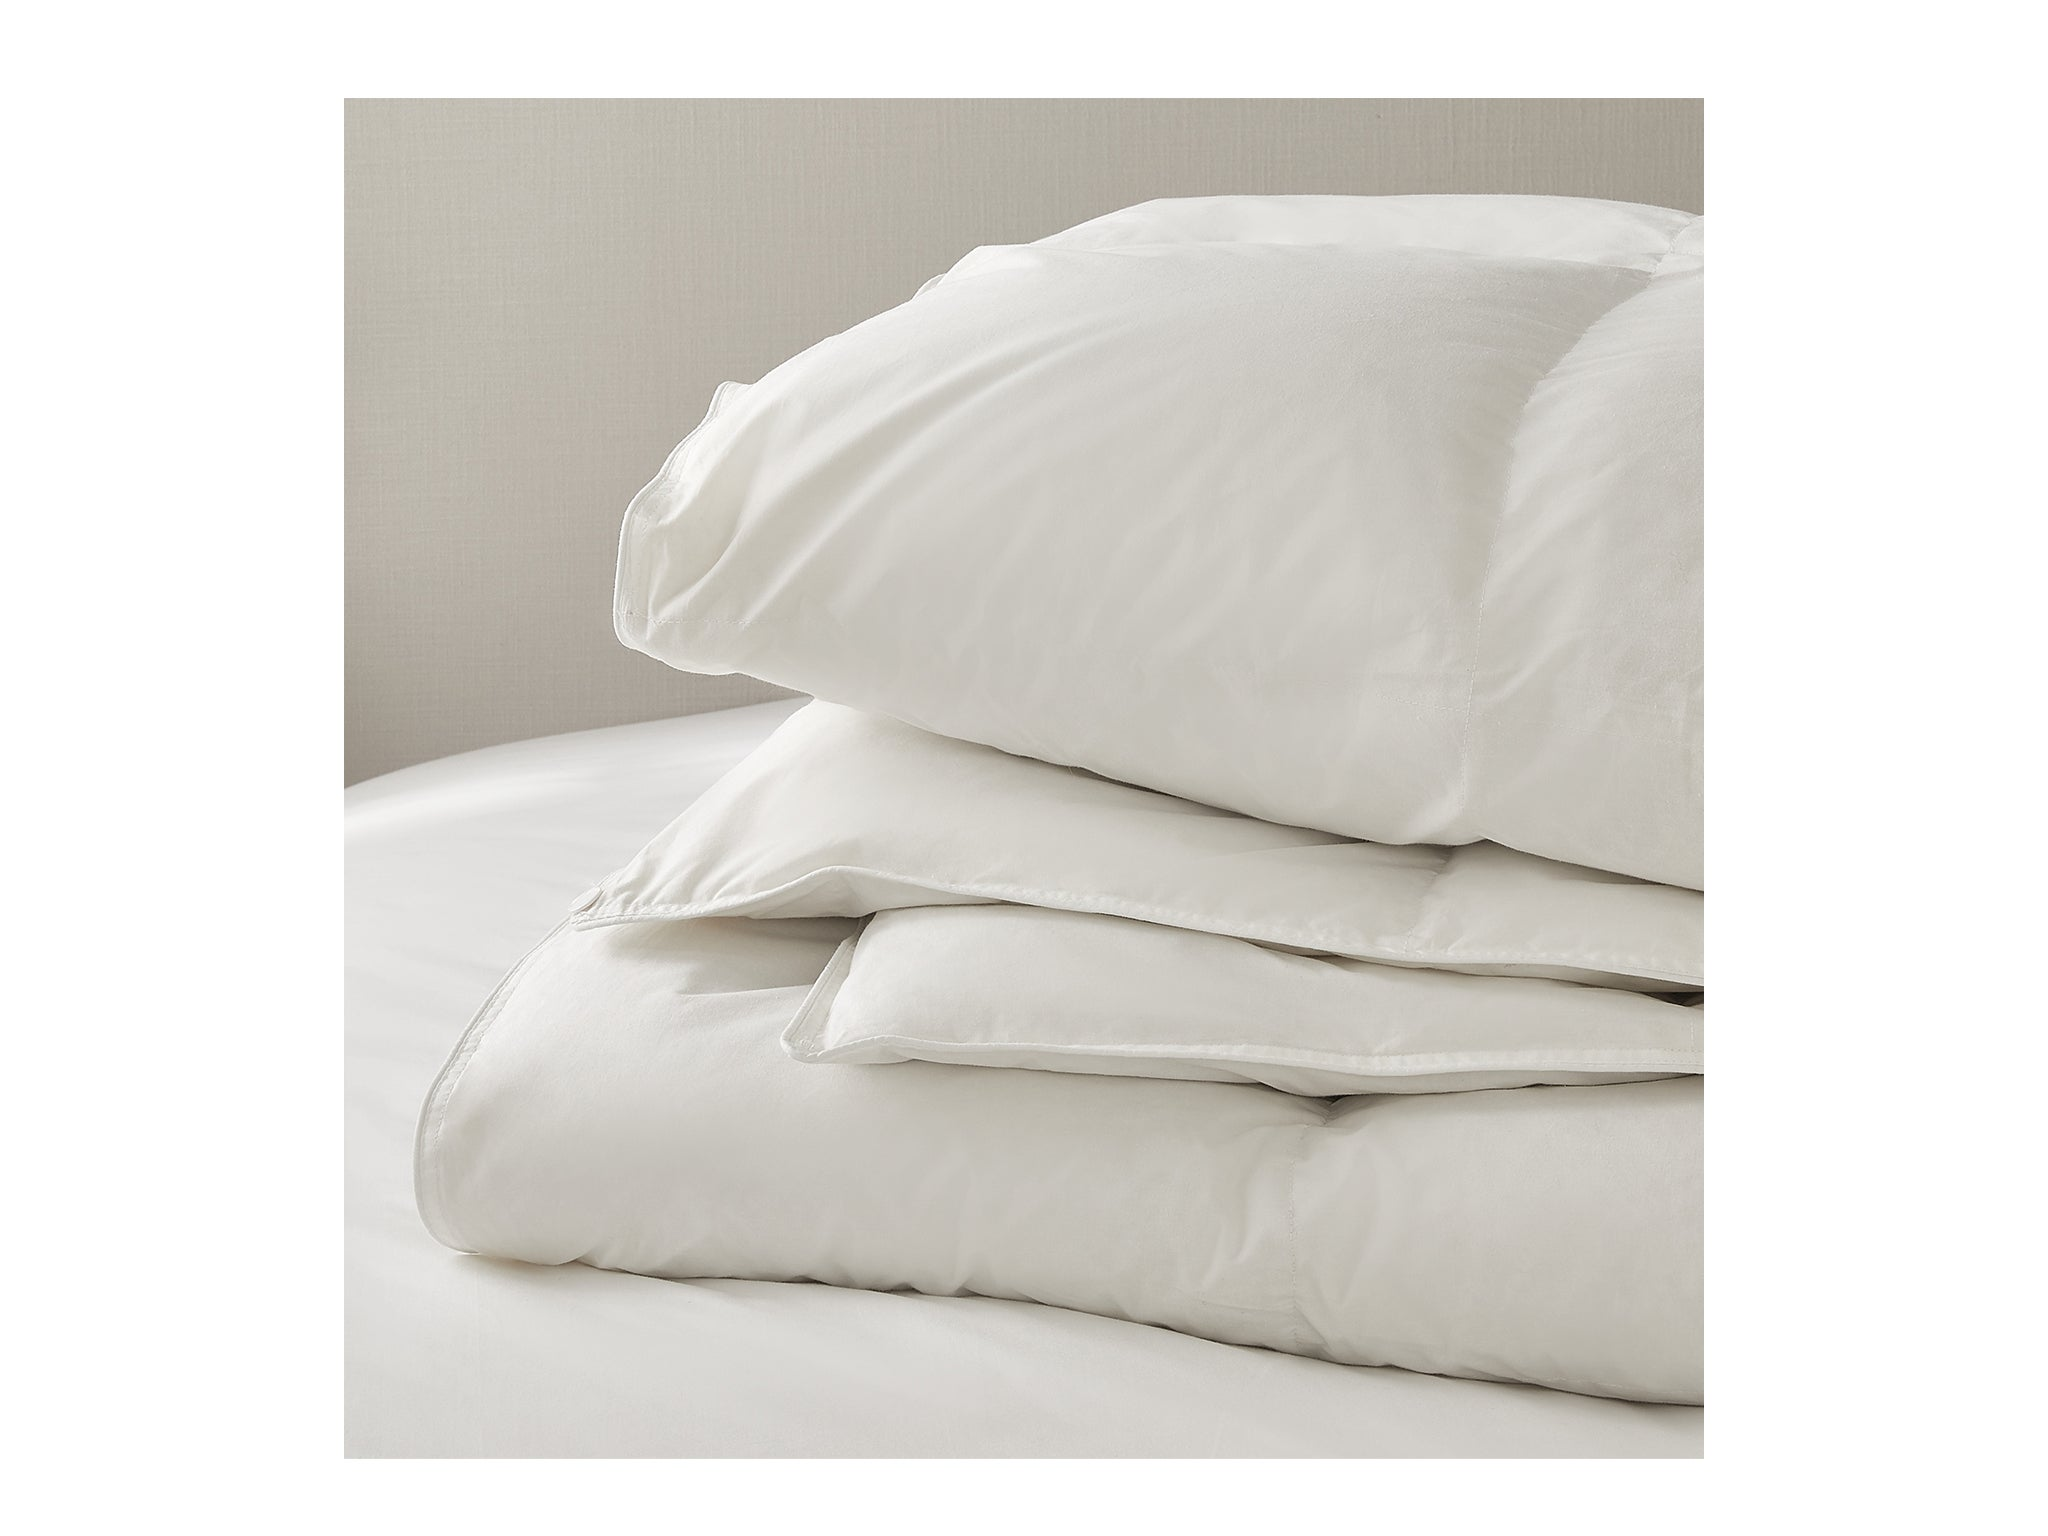 9 of the best winter duvets